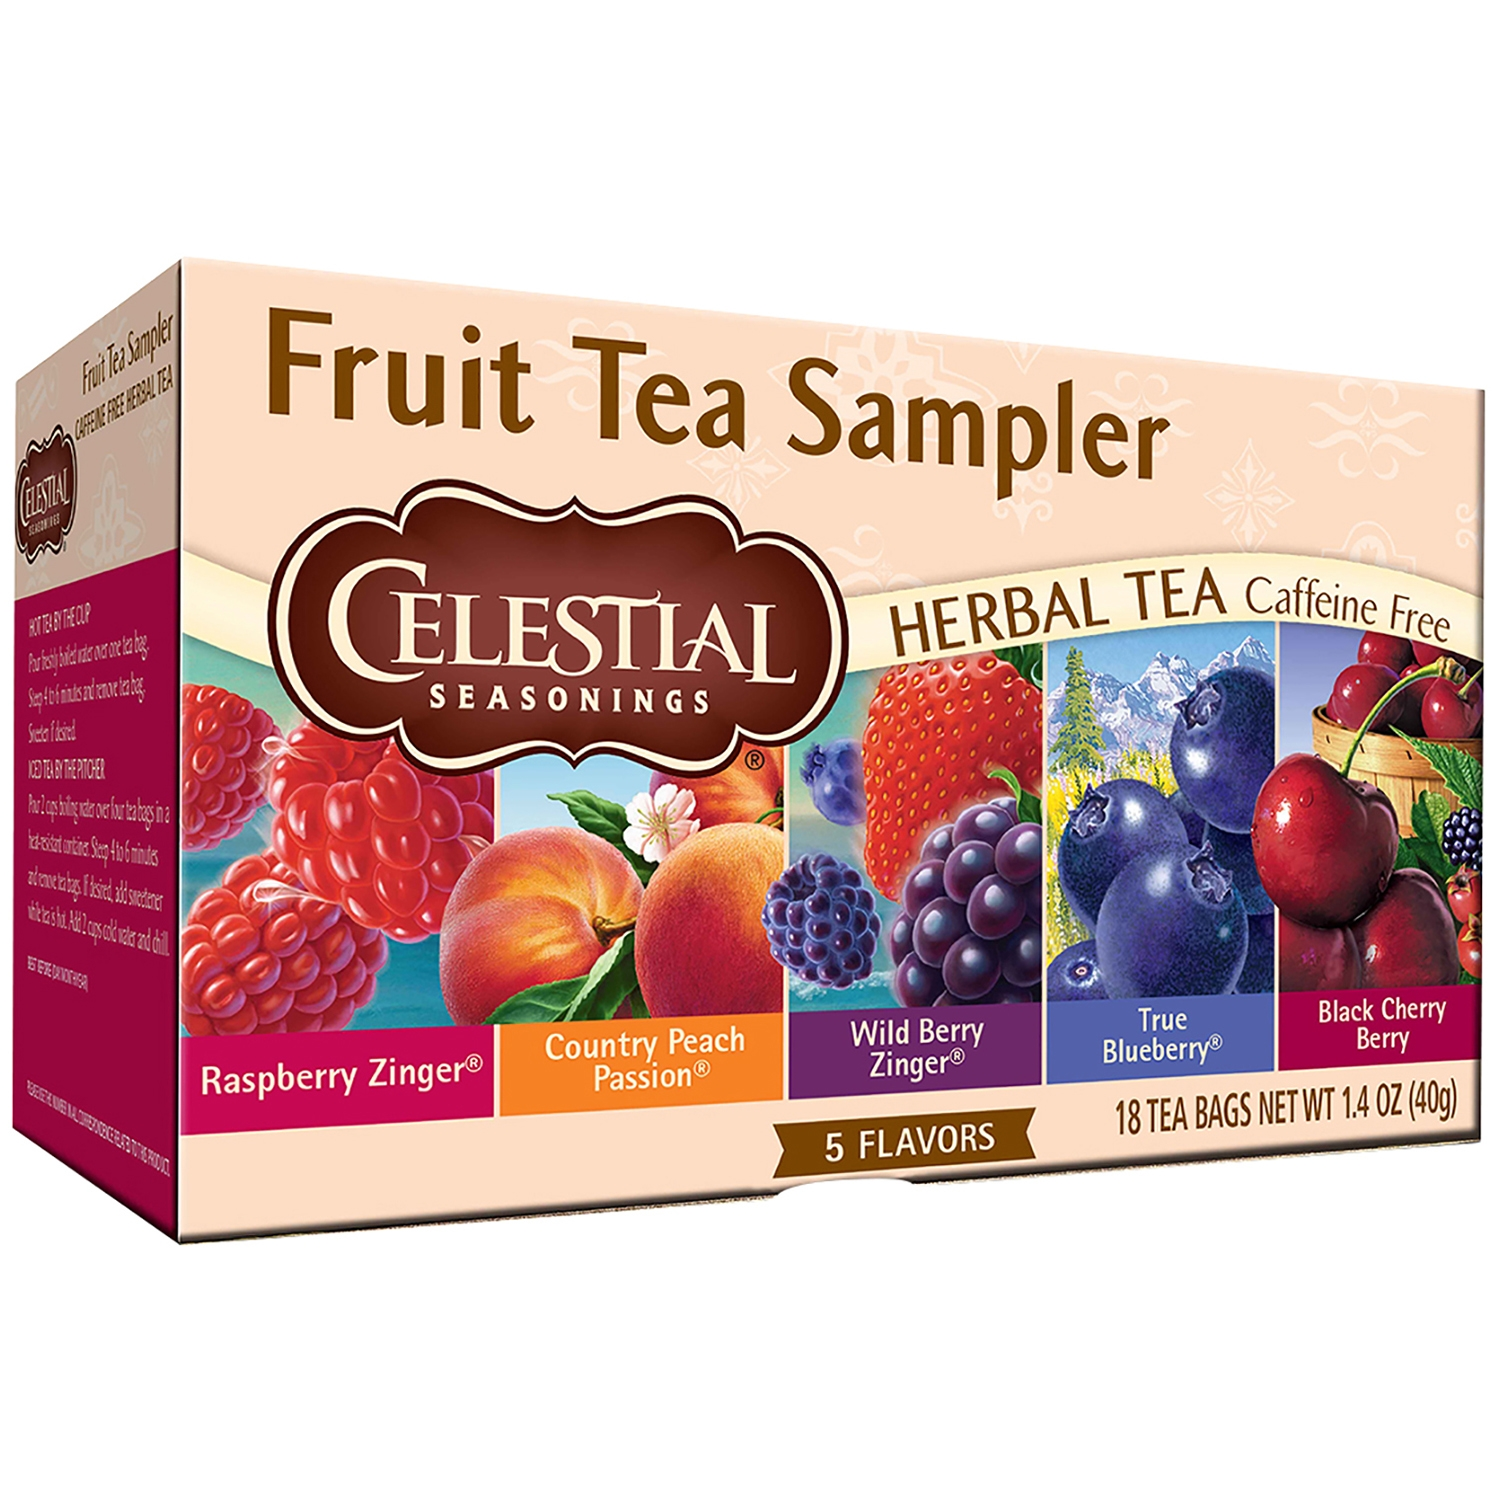 Celestial Seasonings Fruit Tea Sampler, Herbal Tea, Tea Bags, 18 Ct